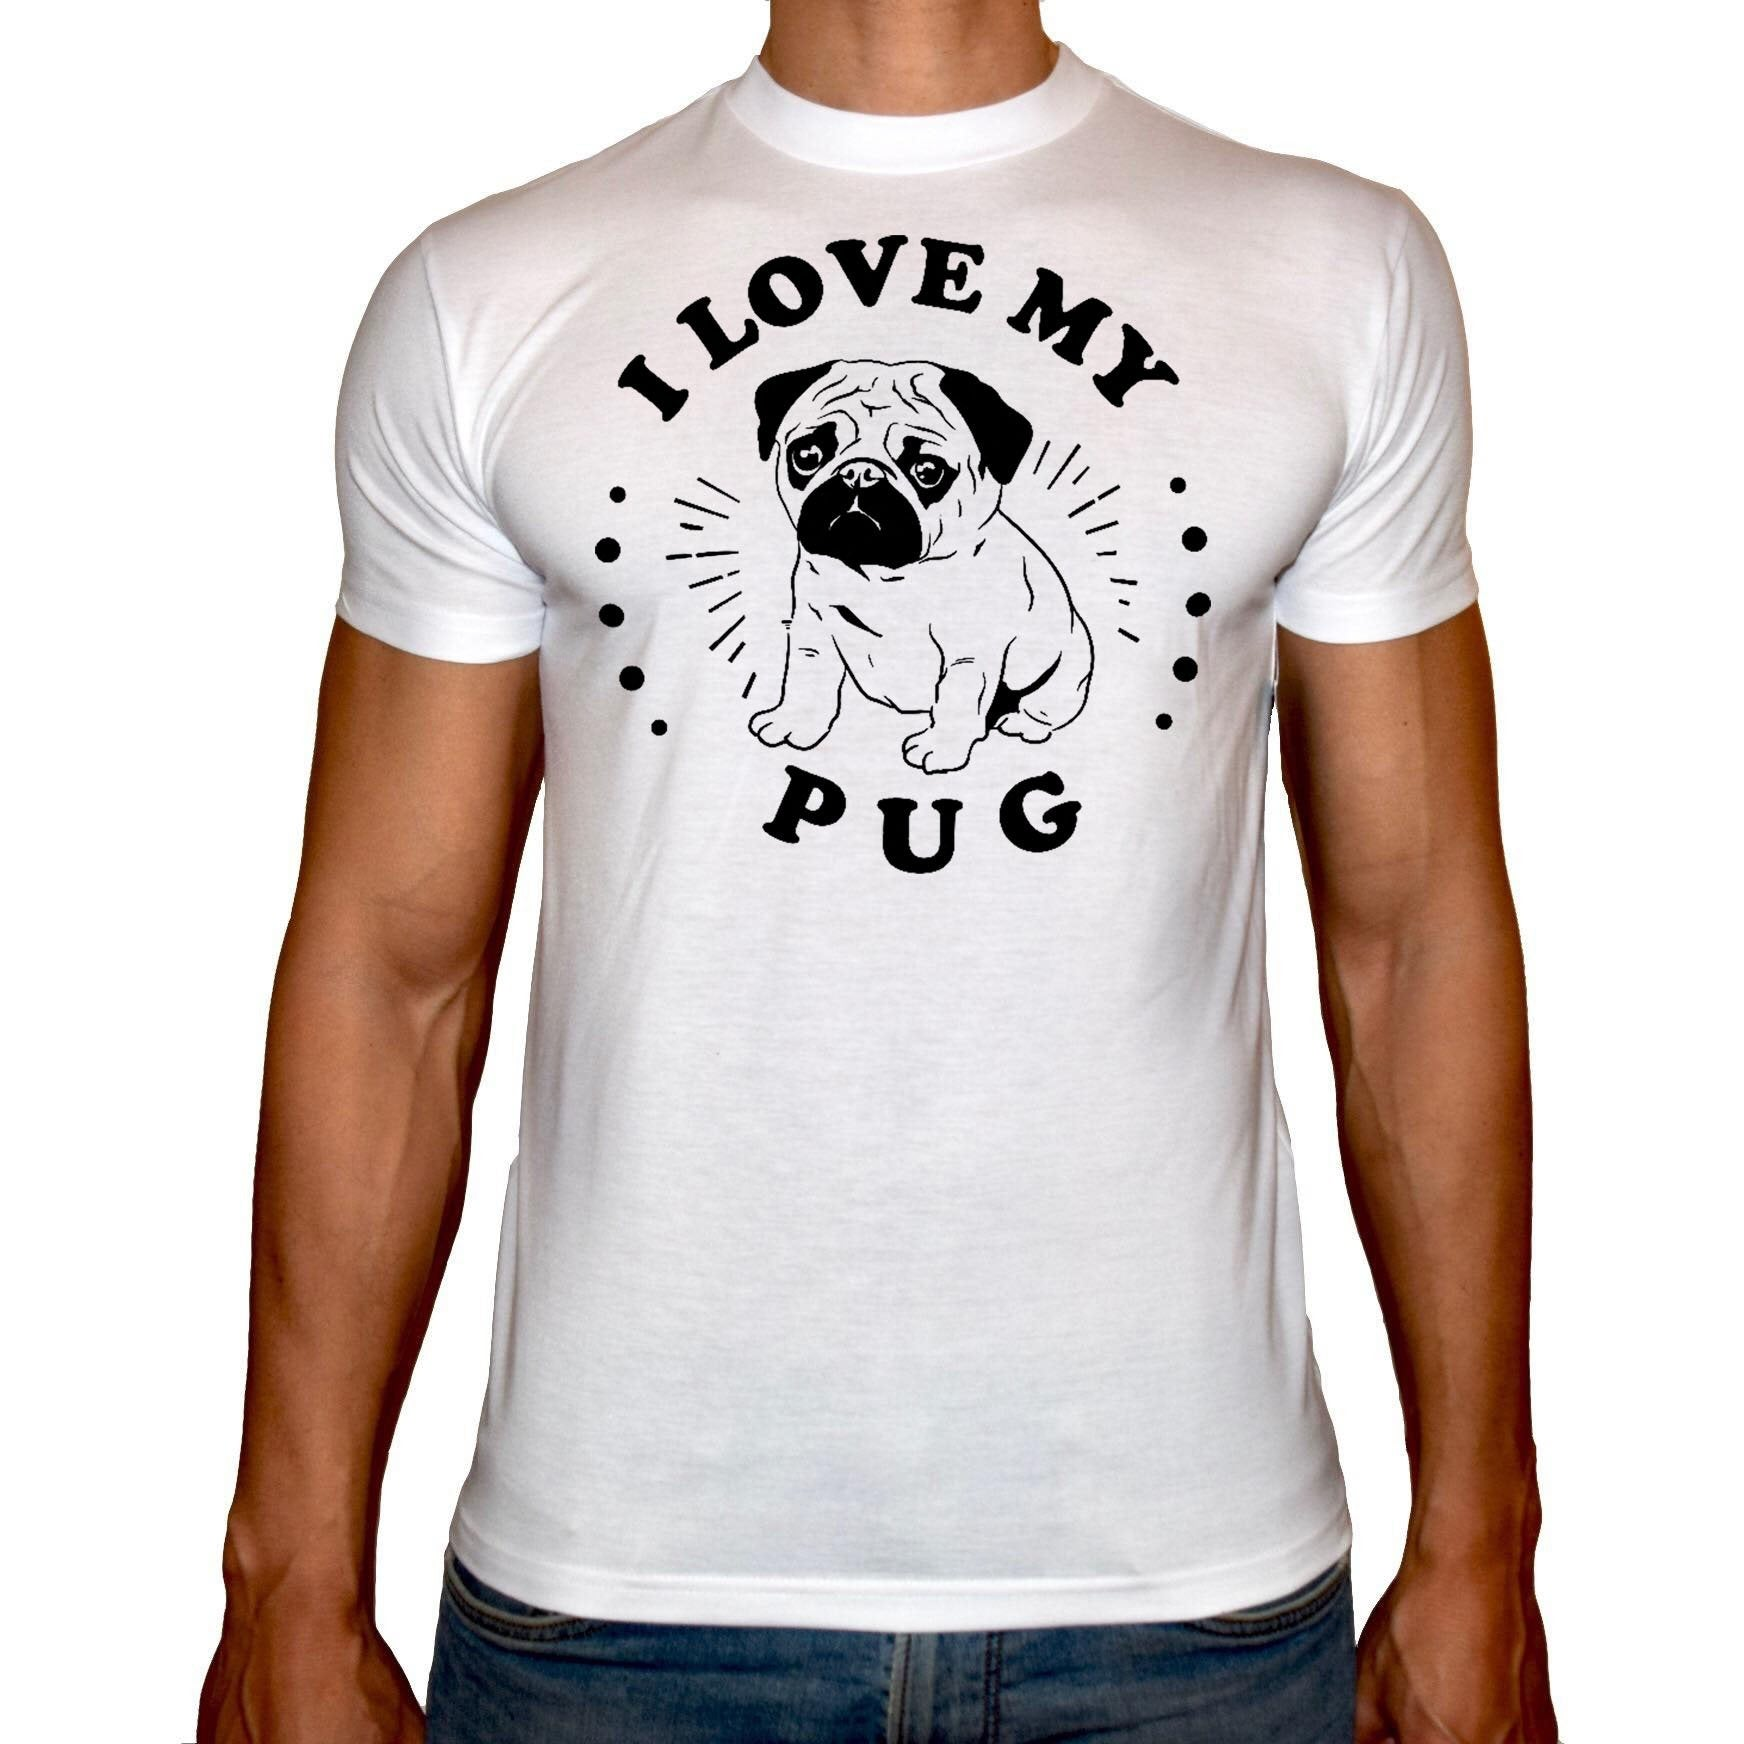 Phoenix WHITE Round Neck Printed T-Shirt Men (Pug)